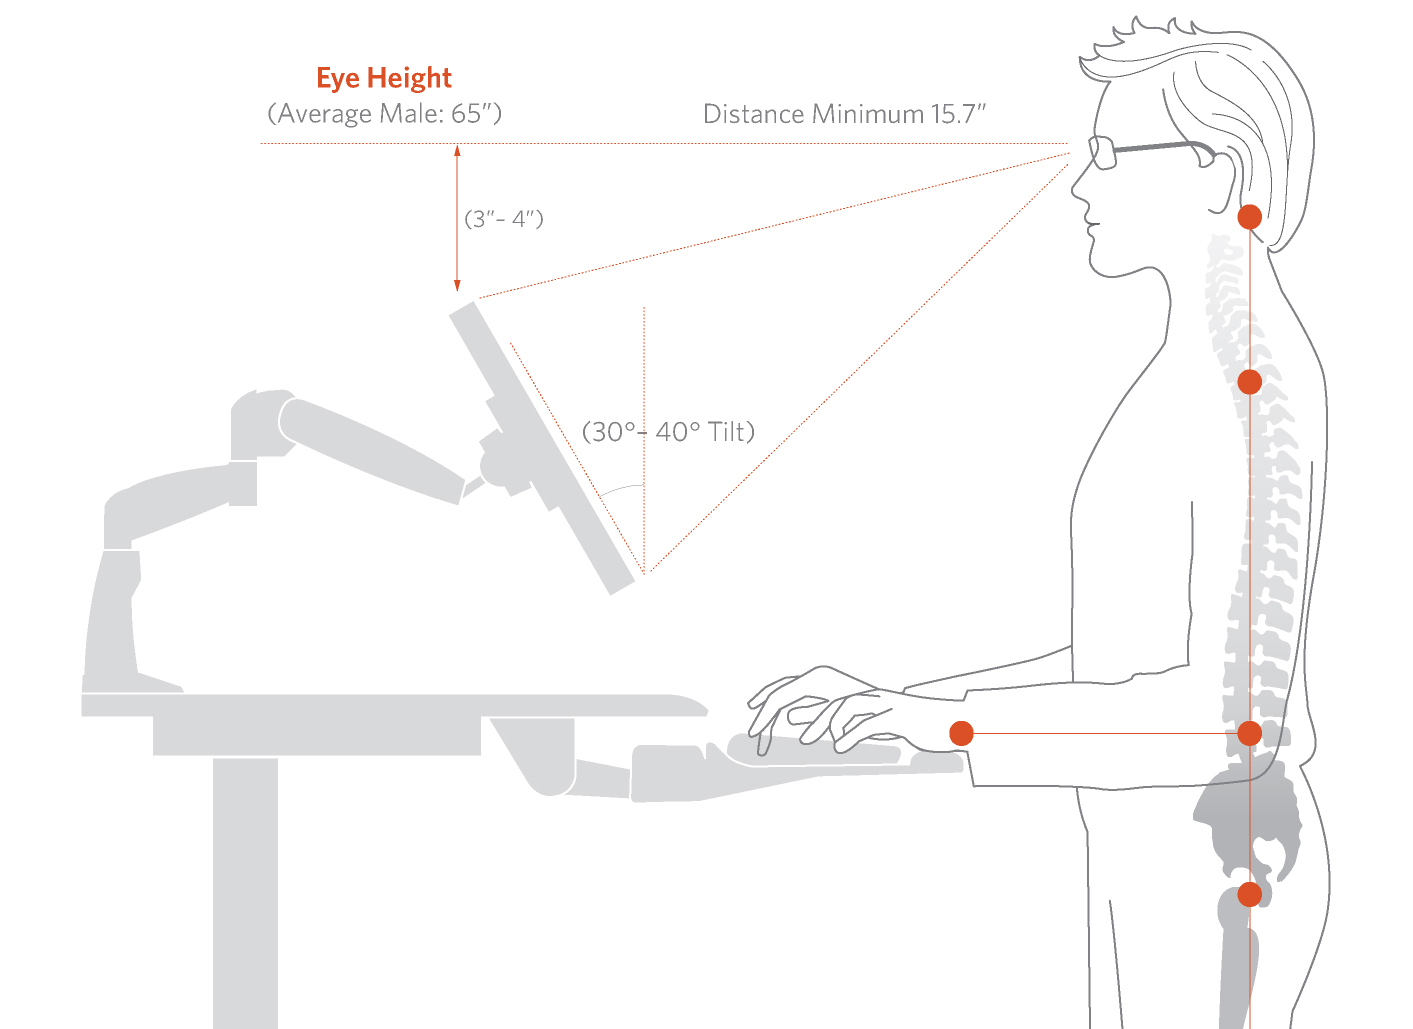 Best Posture For Sitting At A Desk All Day.Effects Of